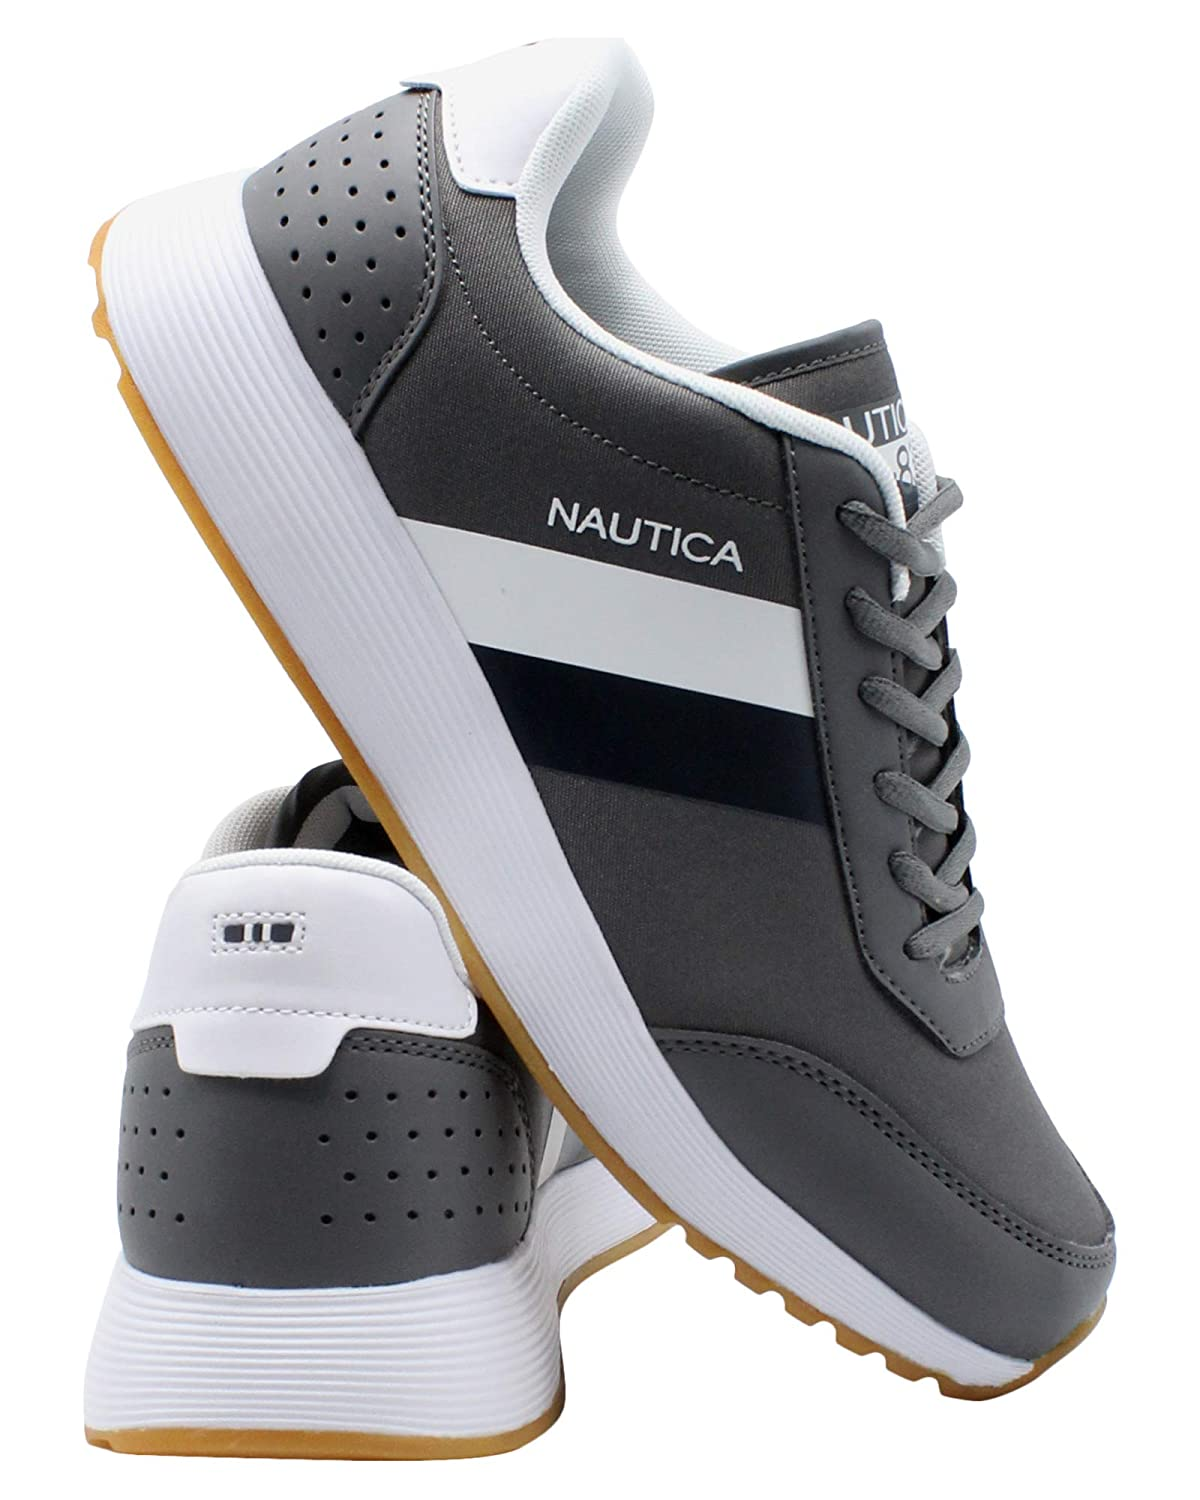 Charcoal Navy White Nautica Men's Casual Lace-Up Fashion Sneakers Oxford Comfortable Walking shoes